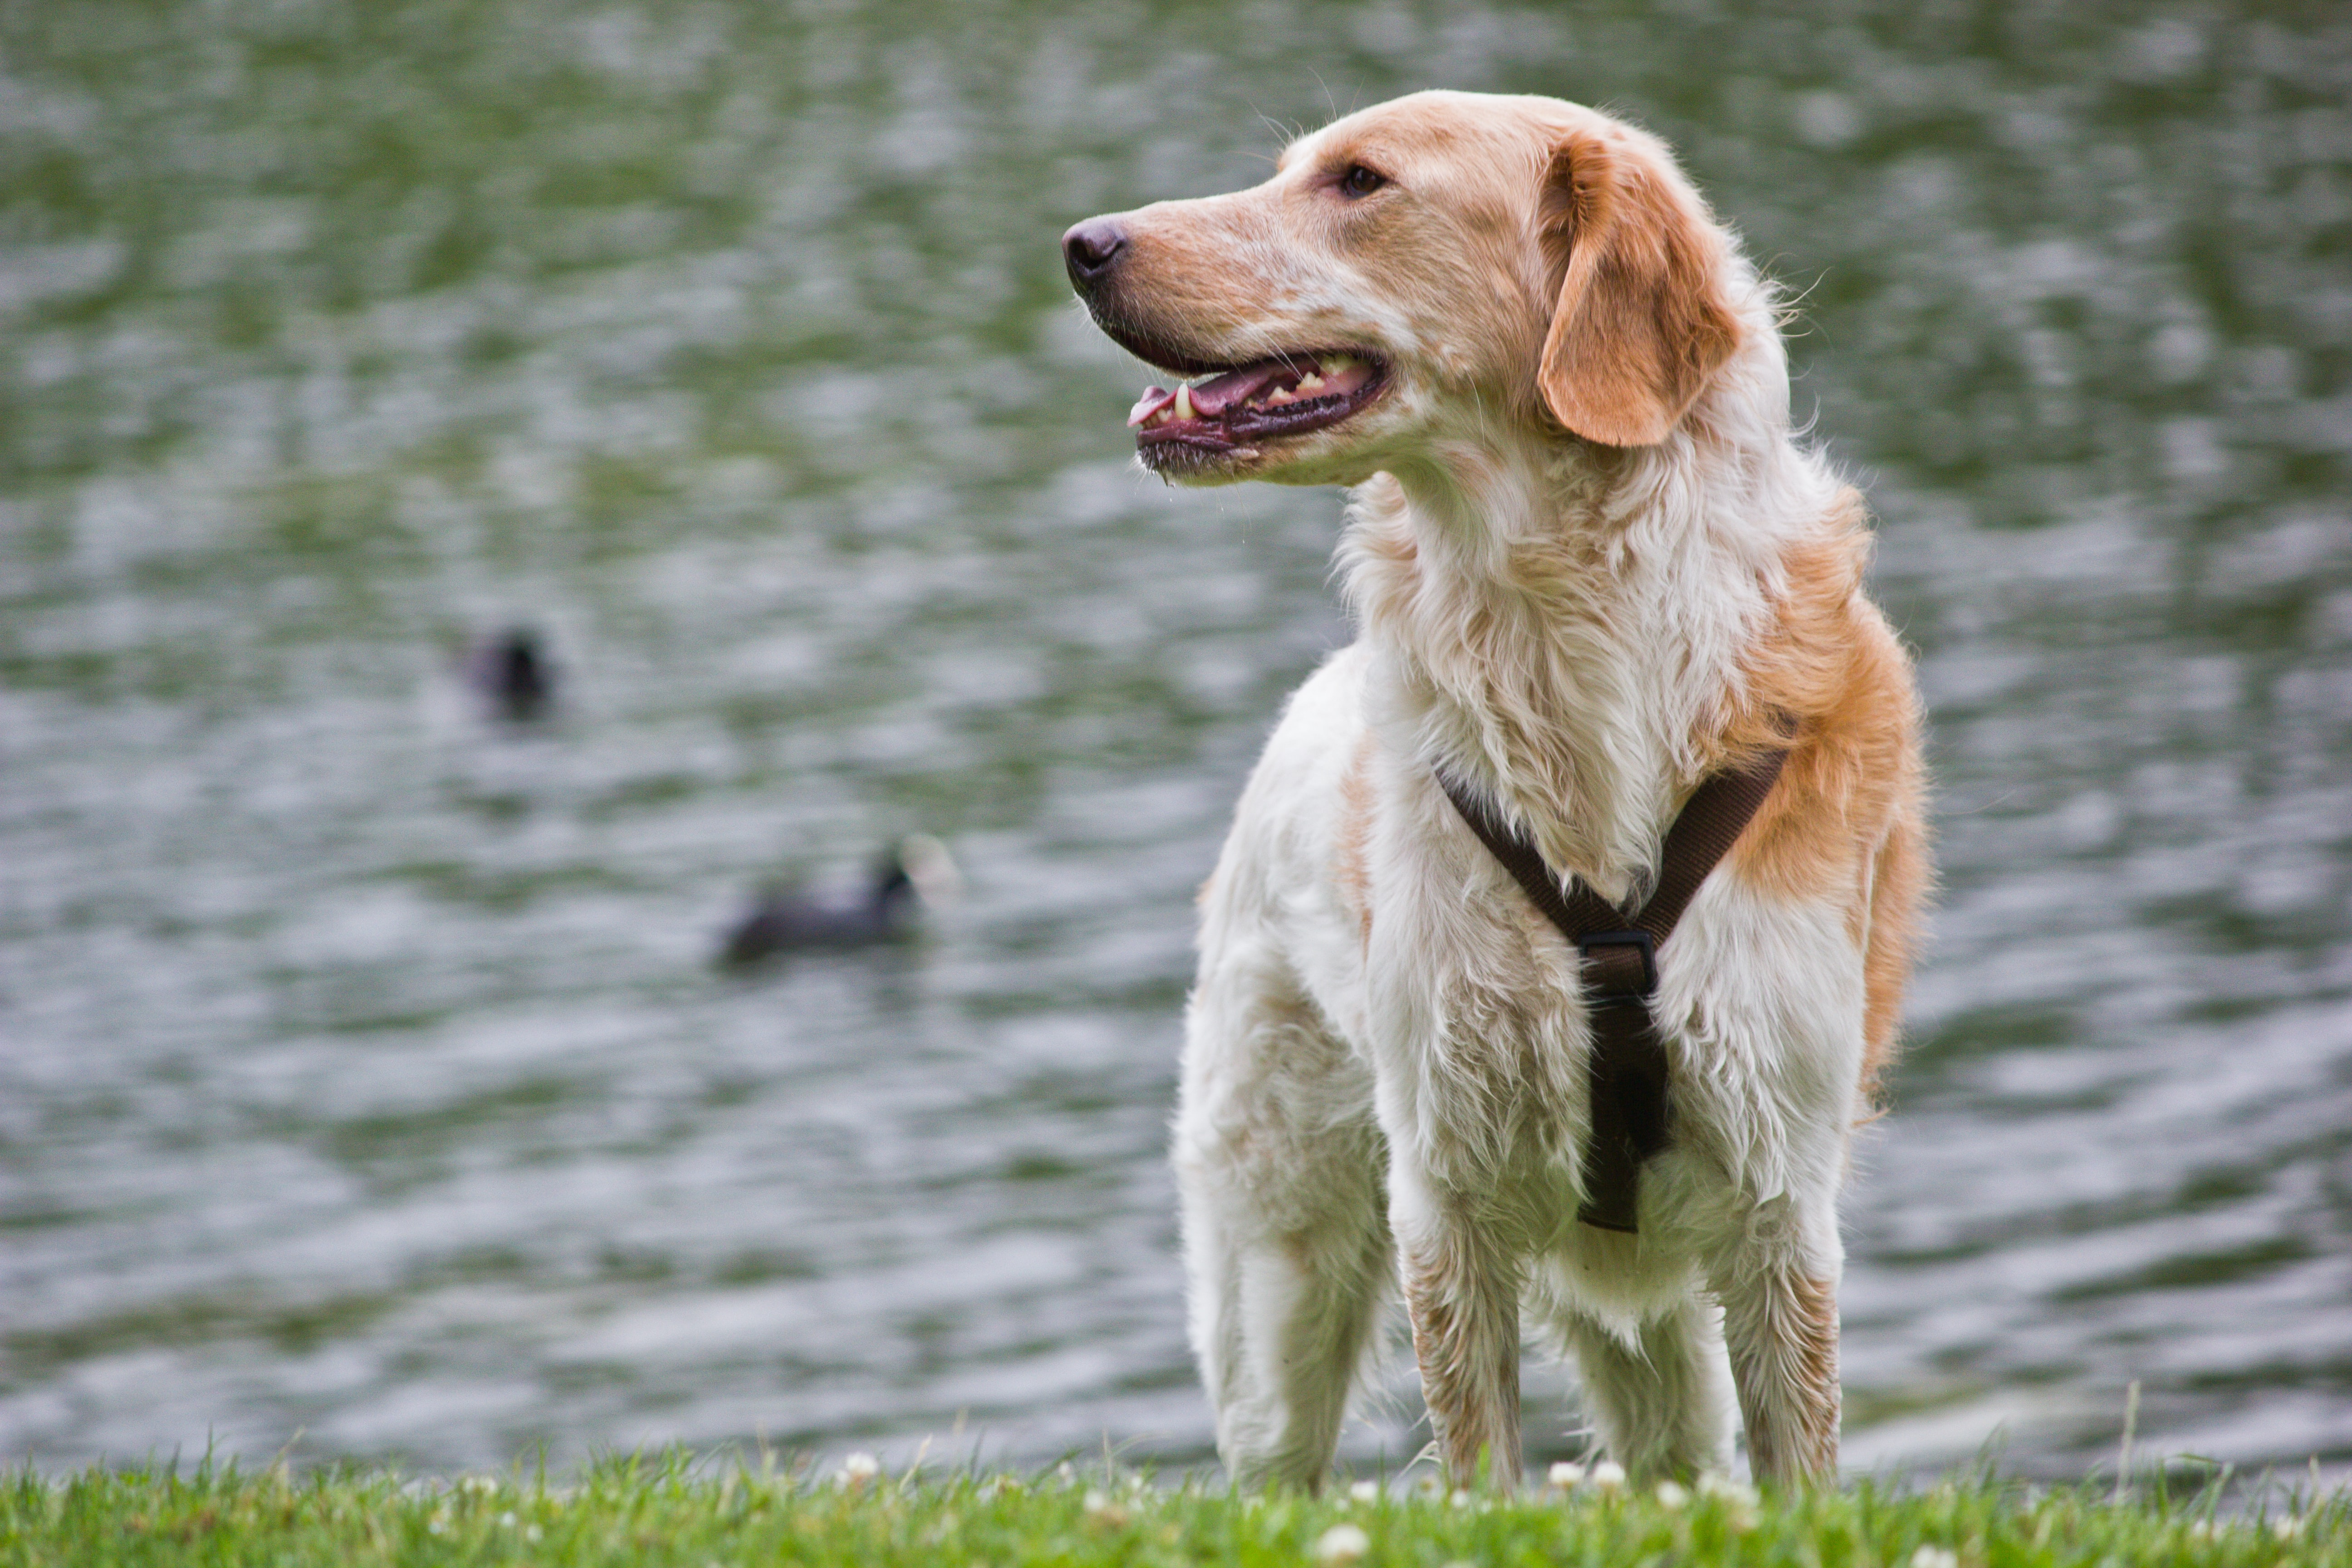 long-coated white and orange dog standing of grass field near body of water